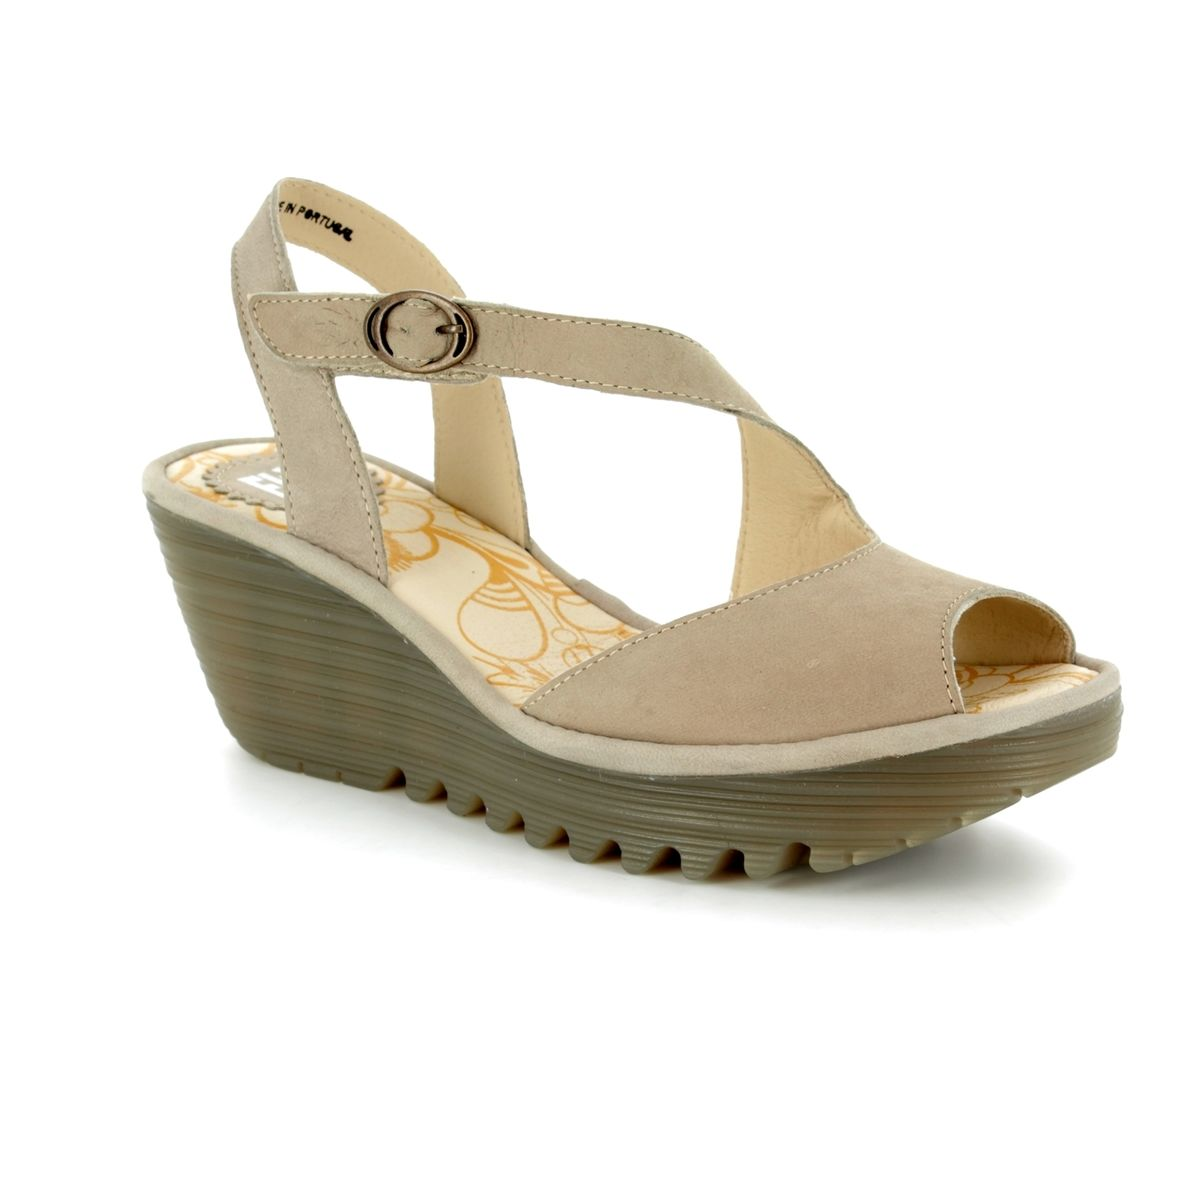 ea093b4b21 Fly London Wedge Sandals - Off-white - P500836 YAMP 836